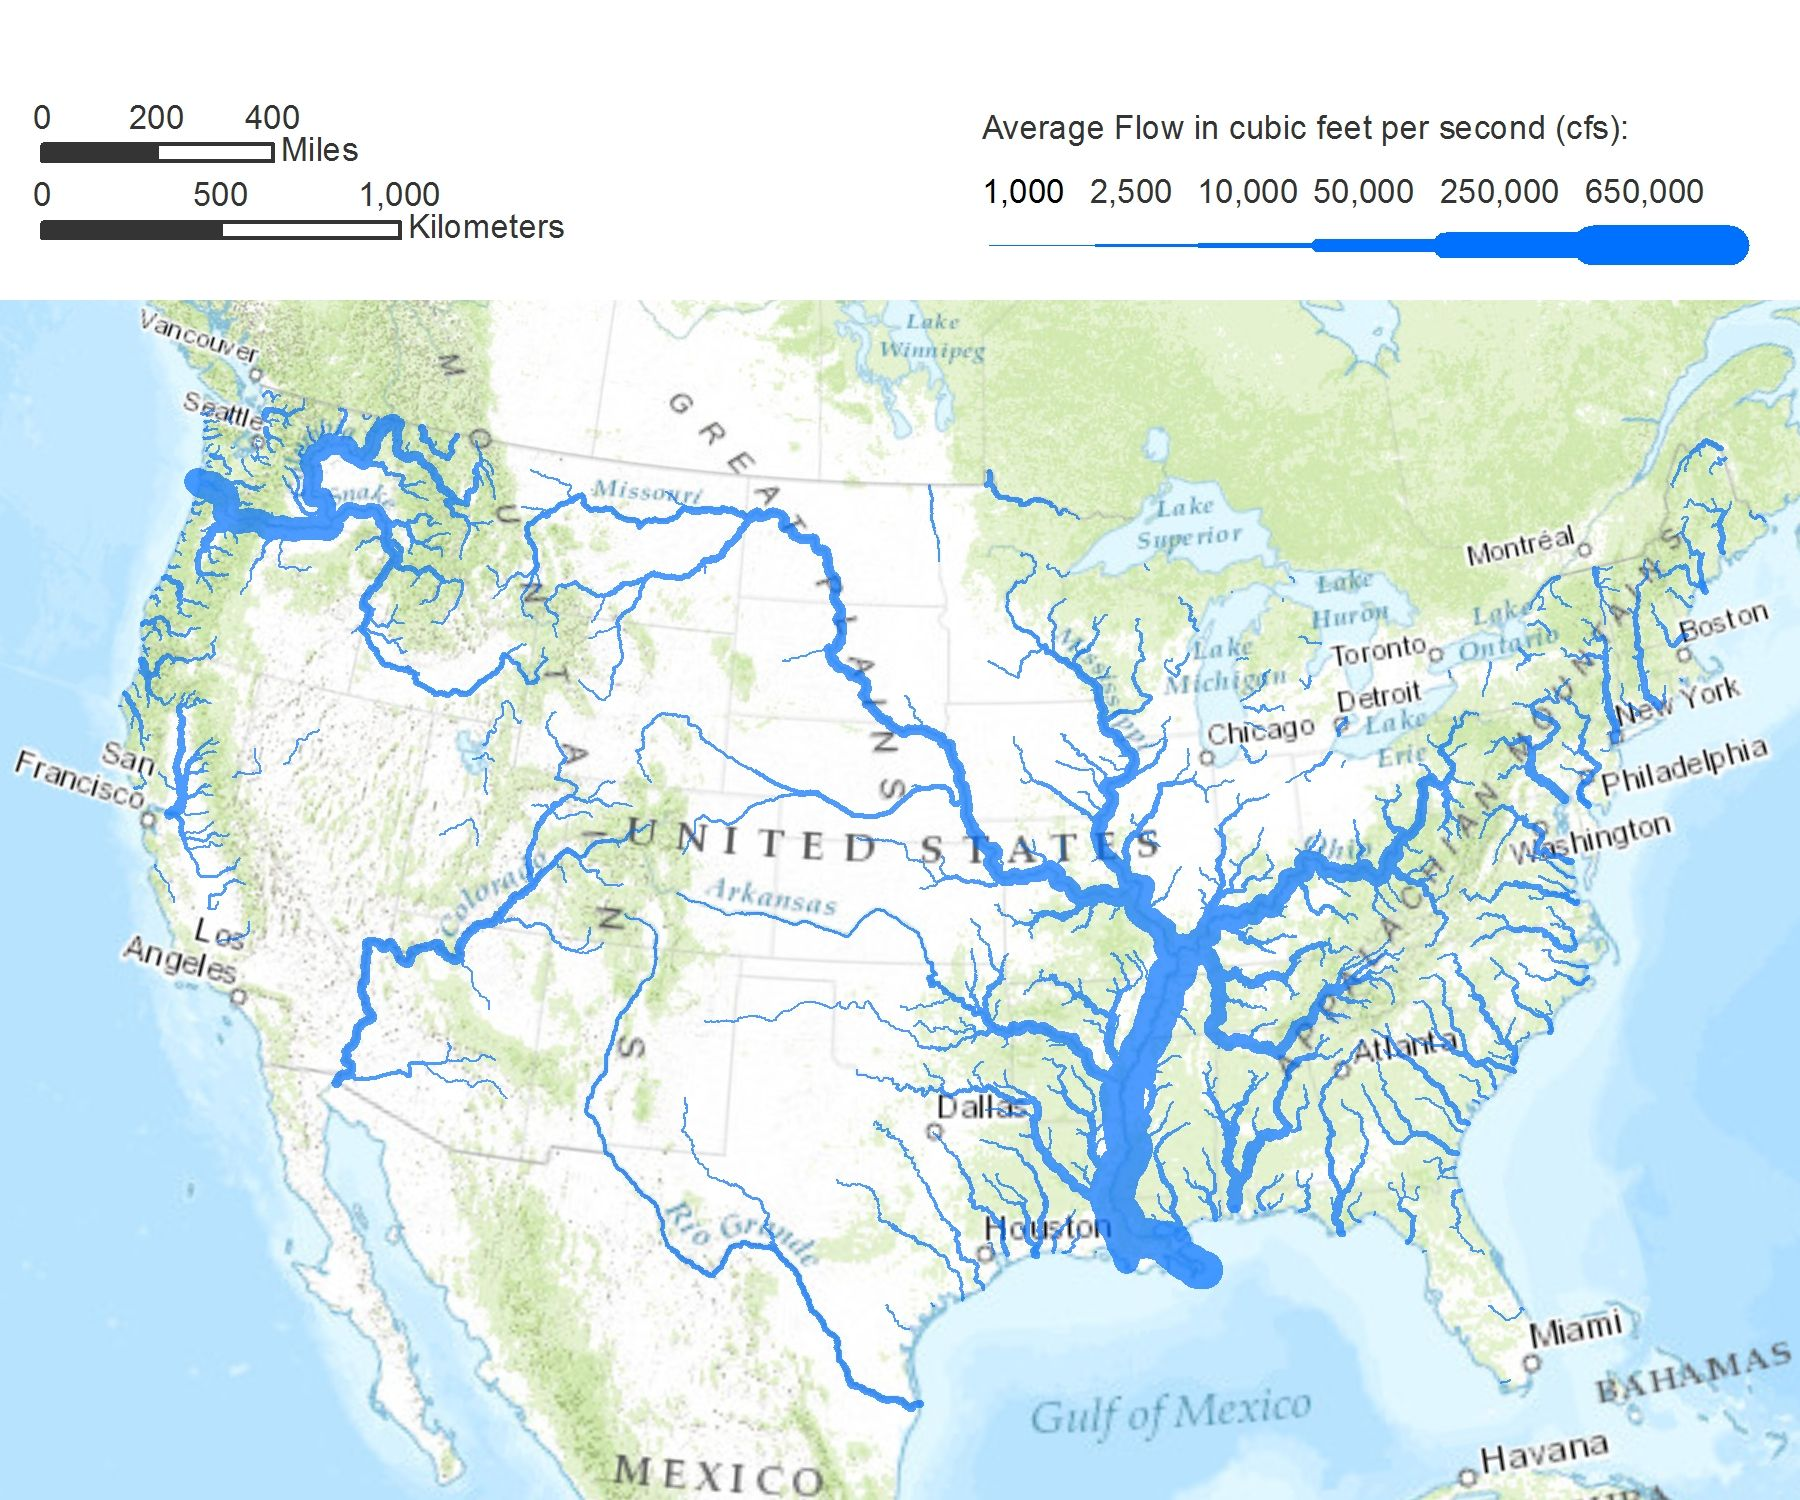 Flow Rates A Map Of The United States Ilrating Flow Rates Of Major Bodies Of